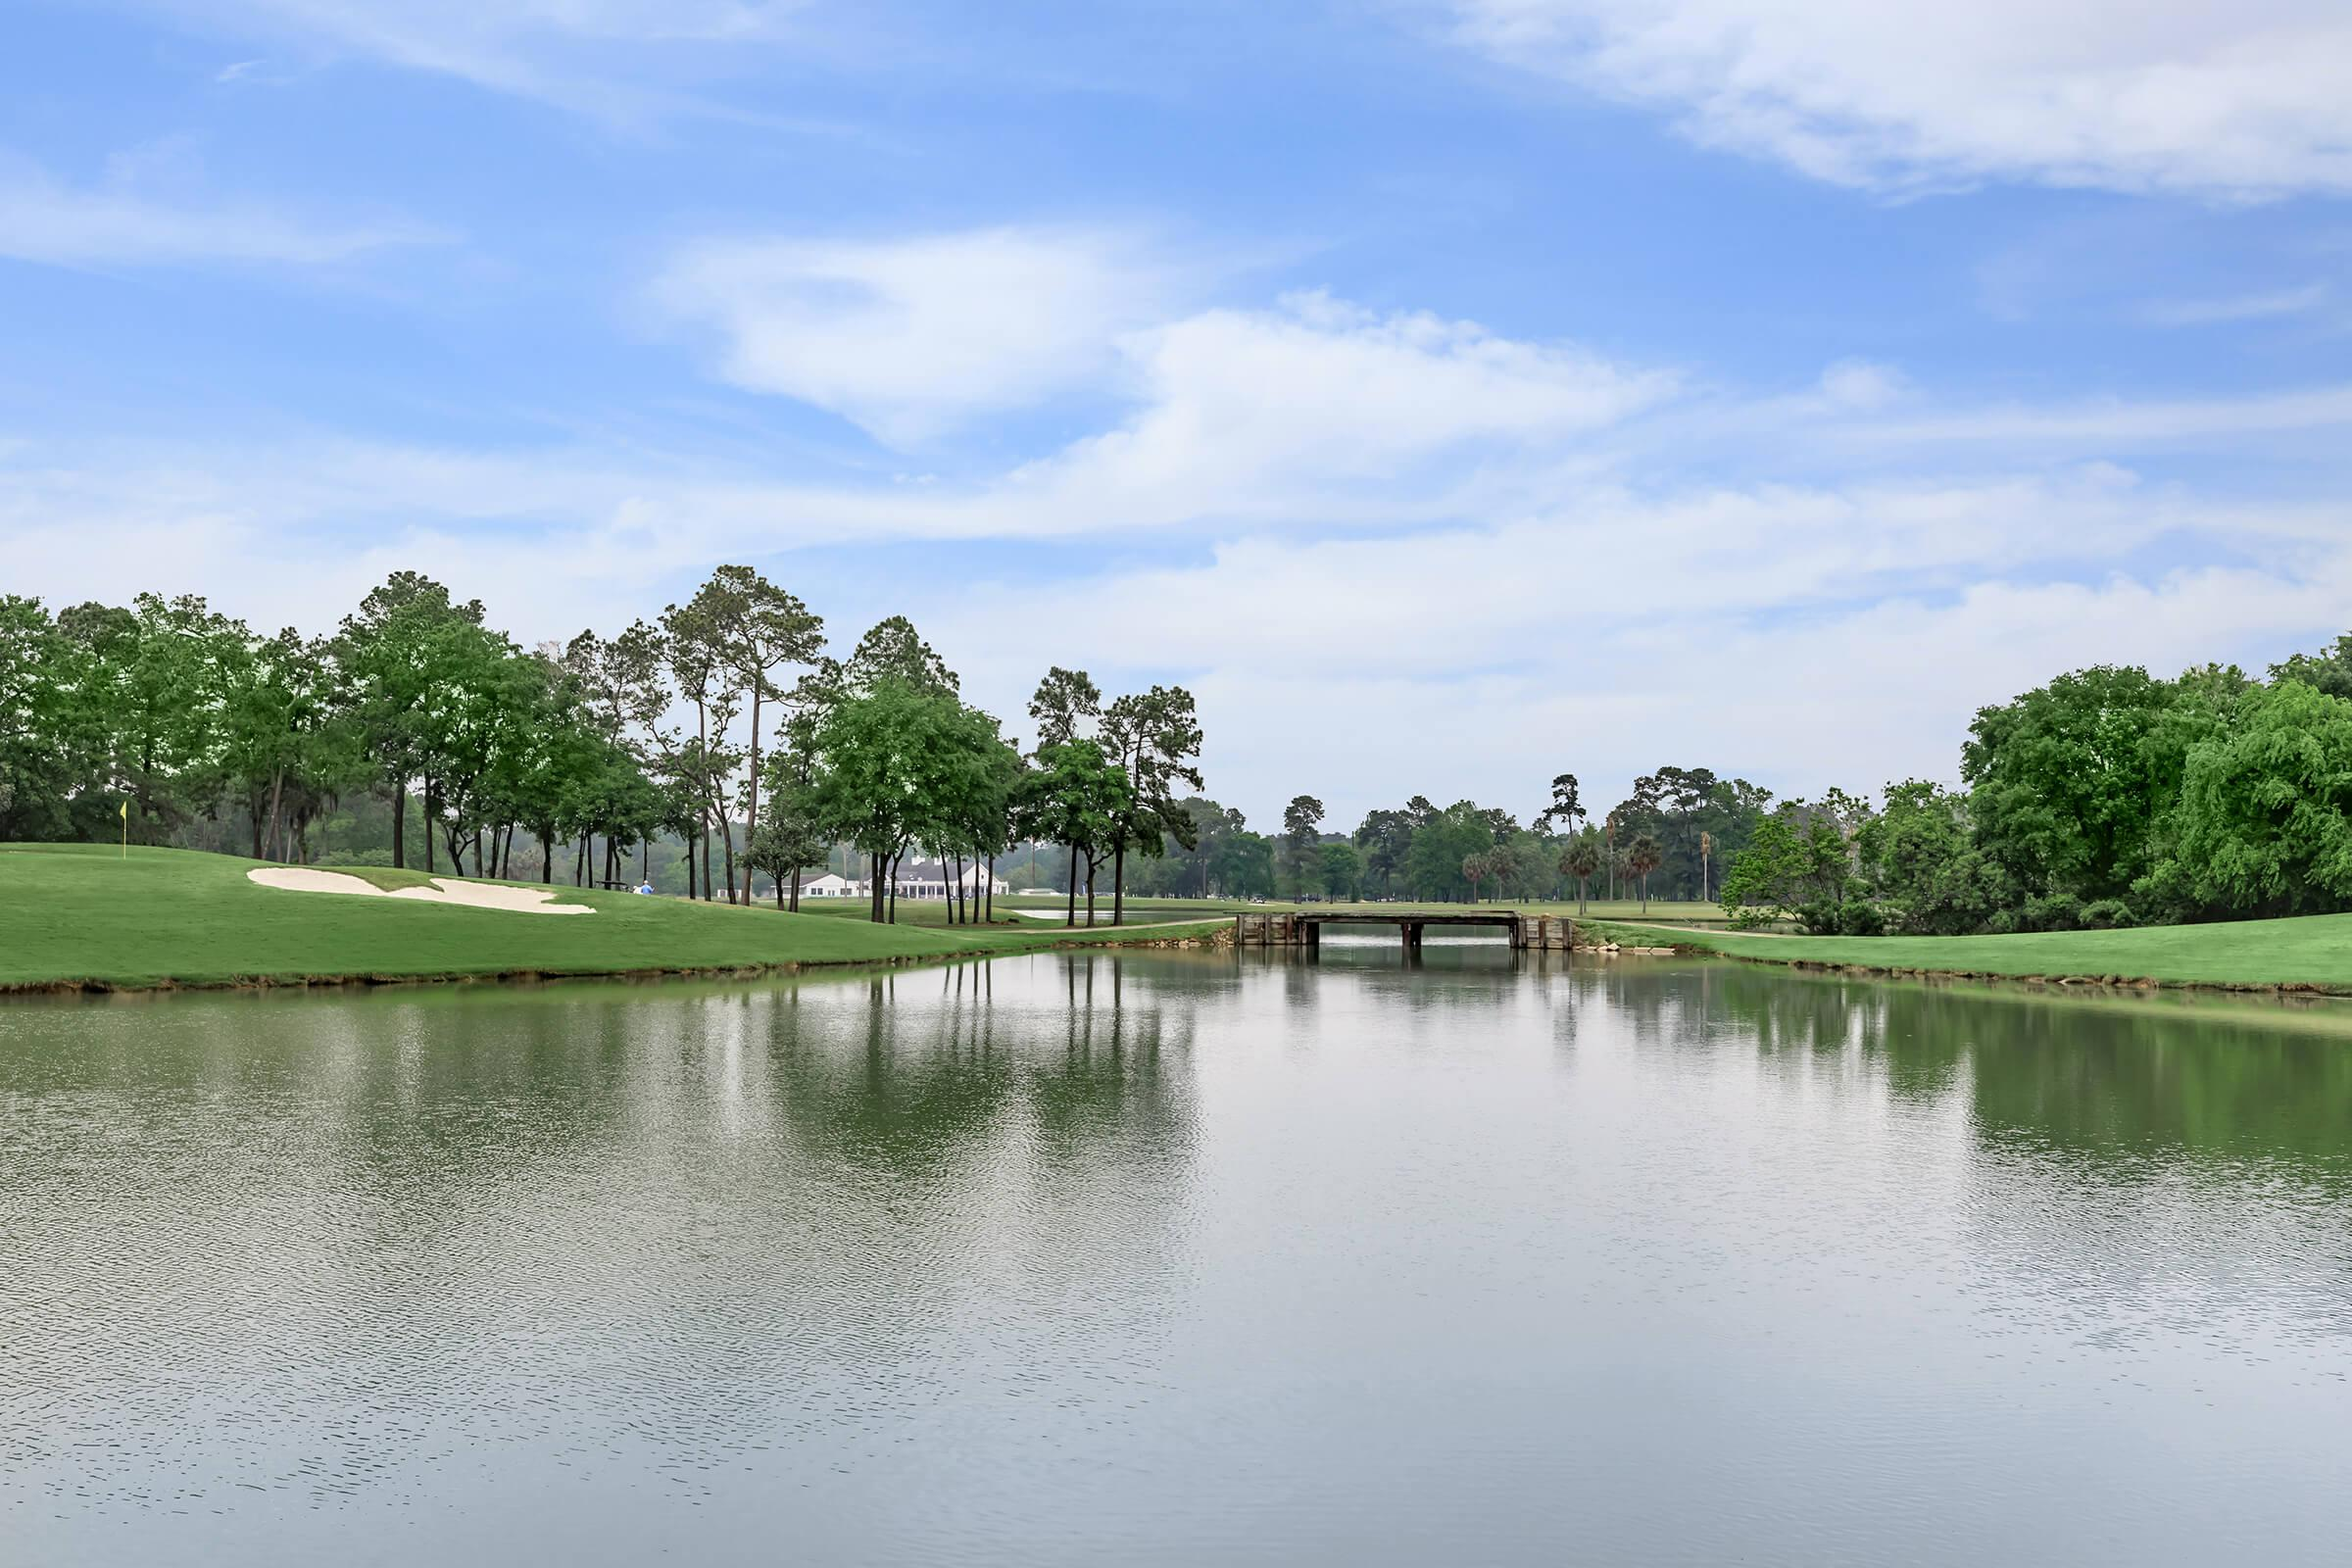 Gorgeous view of adjoining golf course lake.